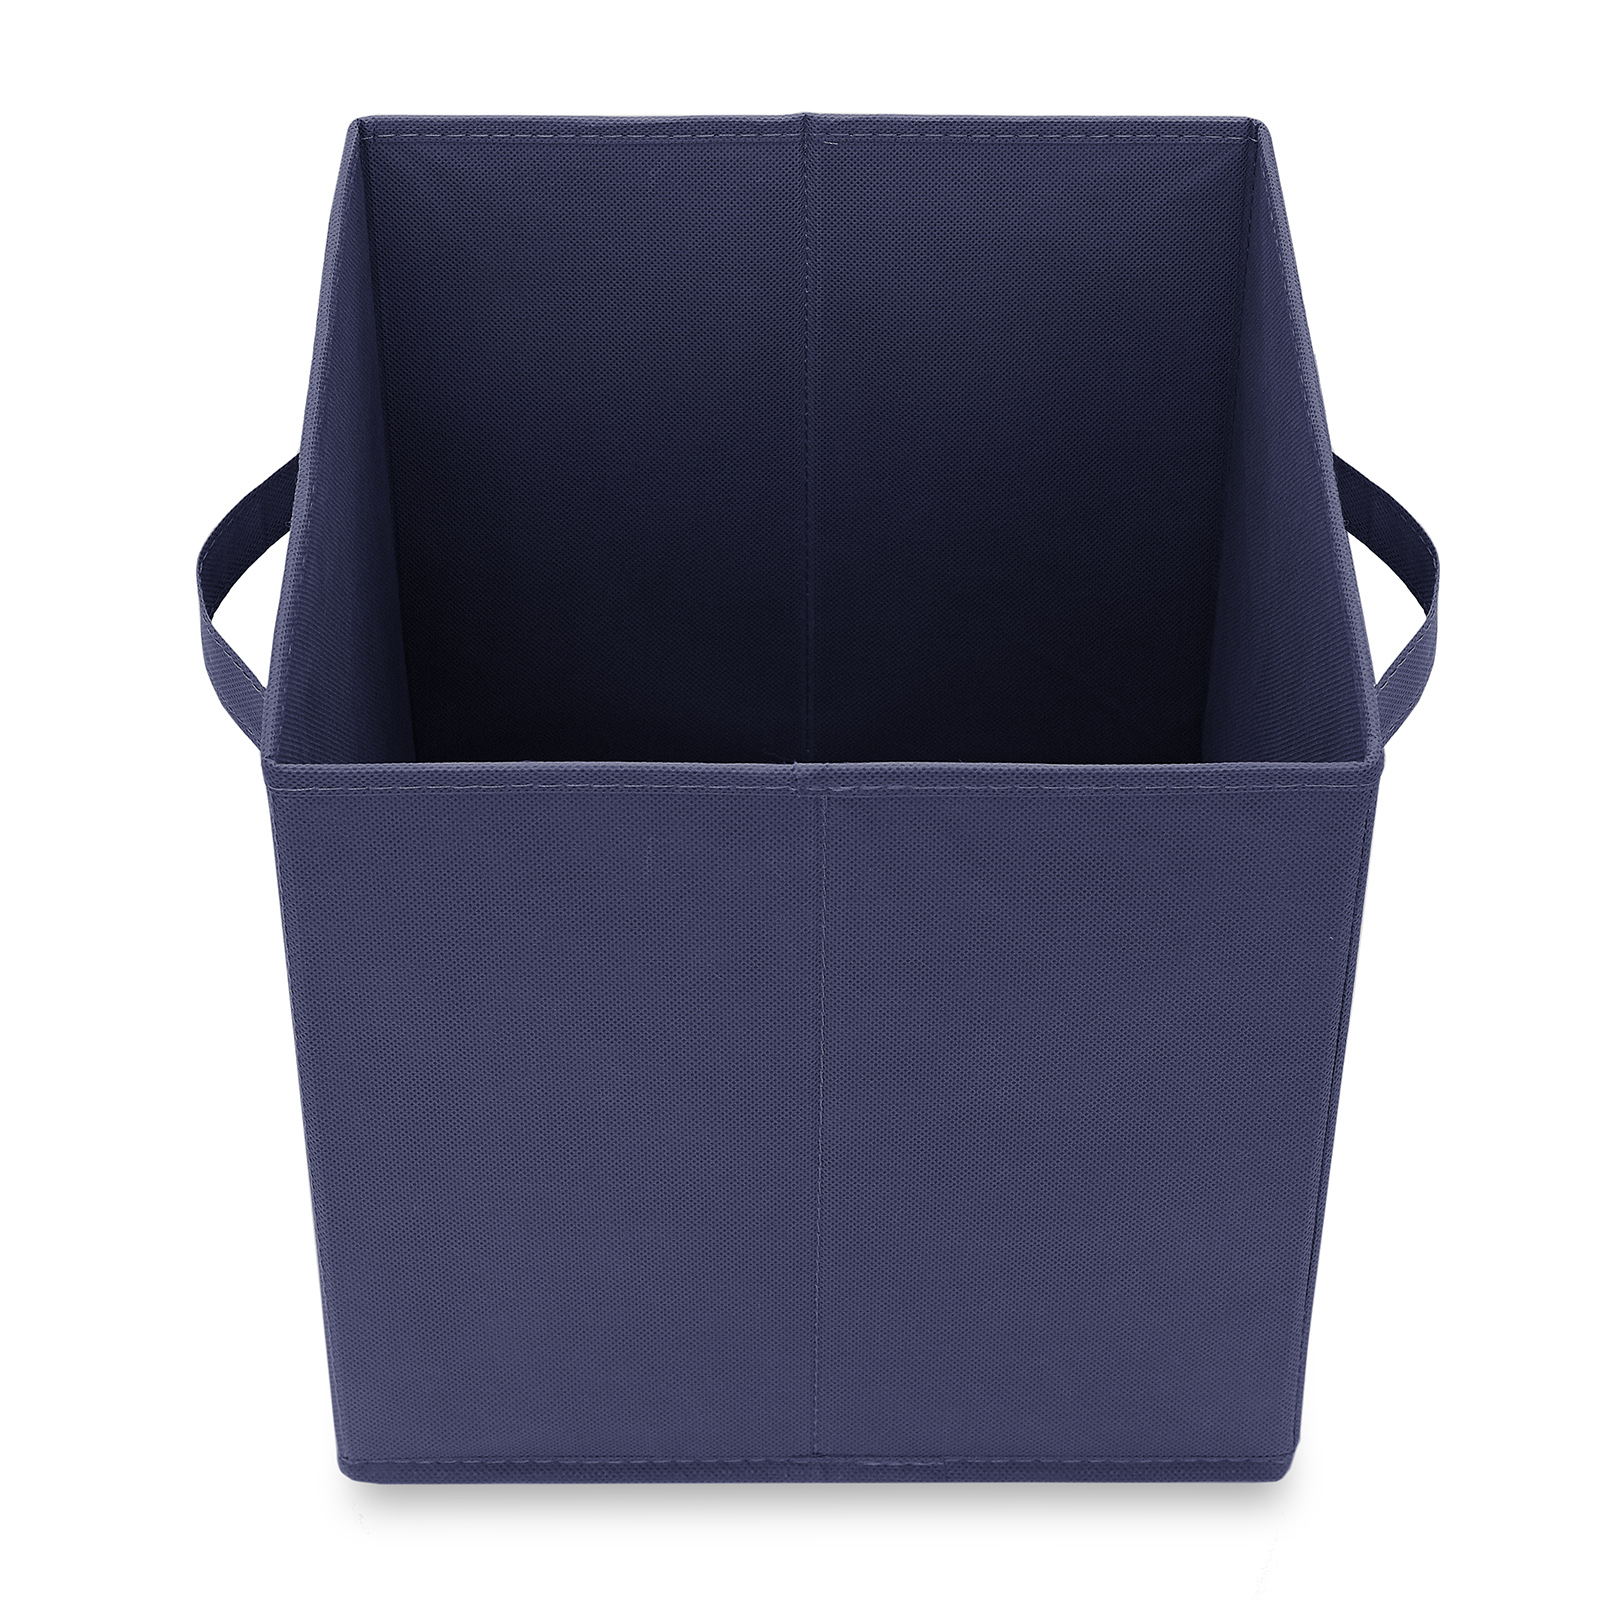 6-Collapsible-Foldable-Cloth-Fabric-Cubby-Cube-Storage-Bins-Baskets-for-Shelves thumbnail 56